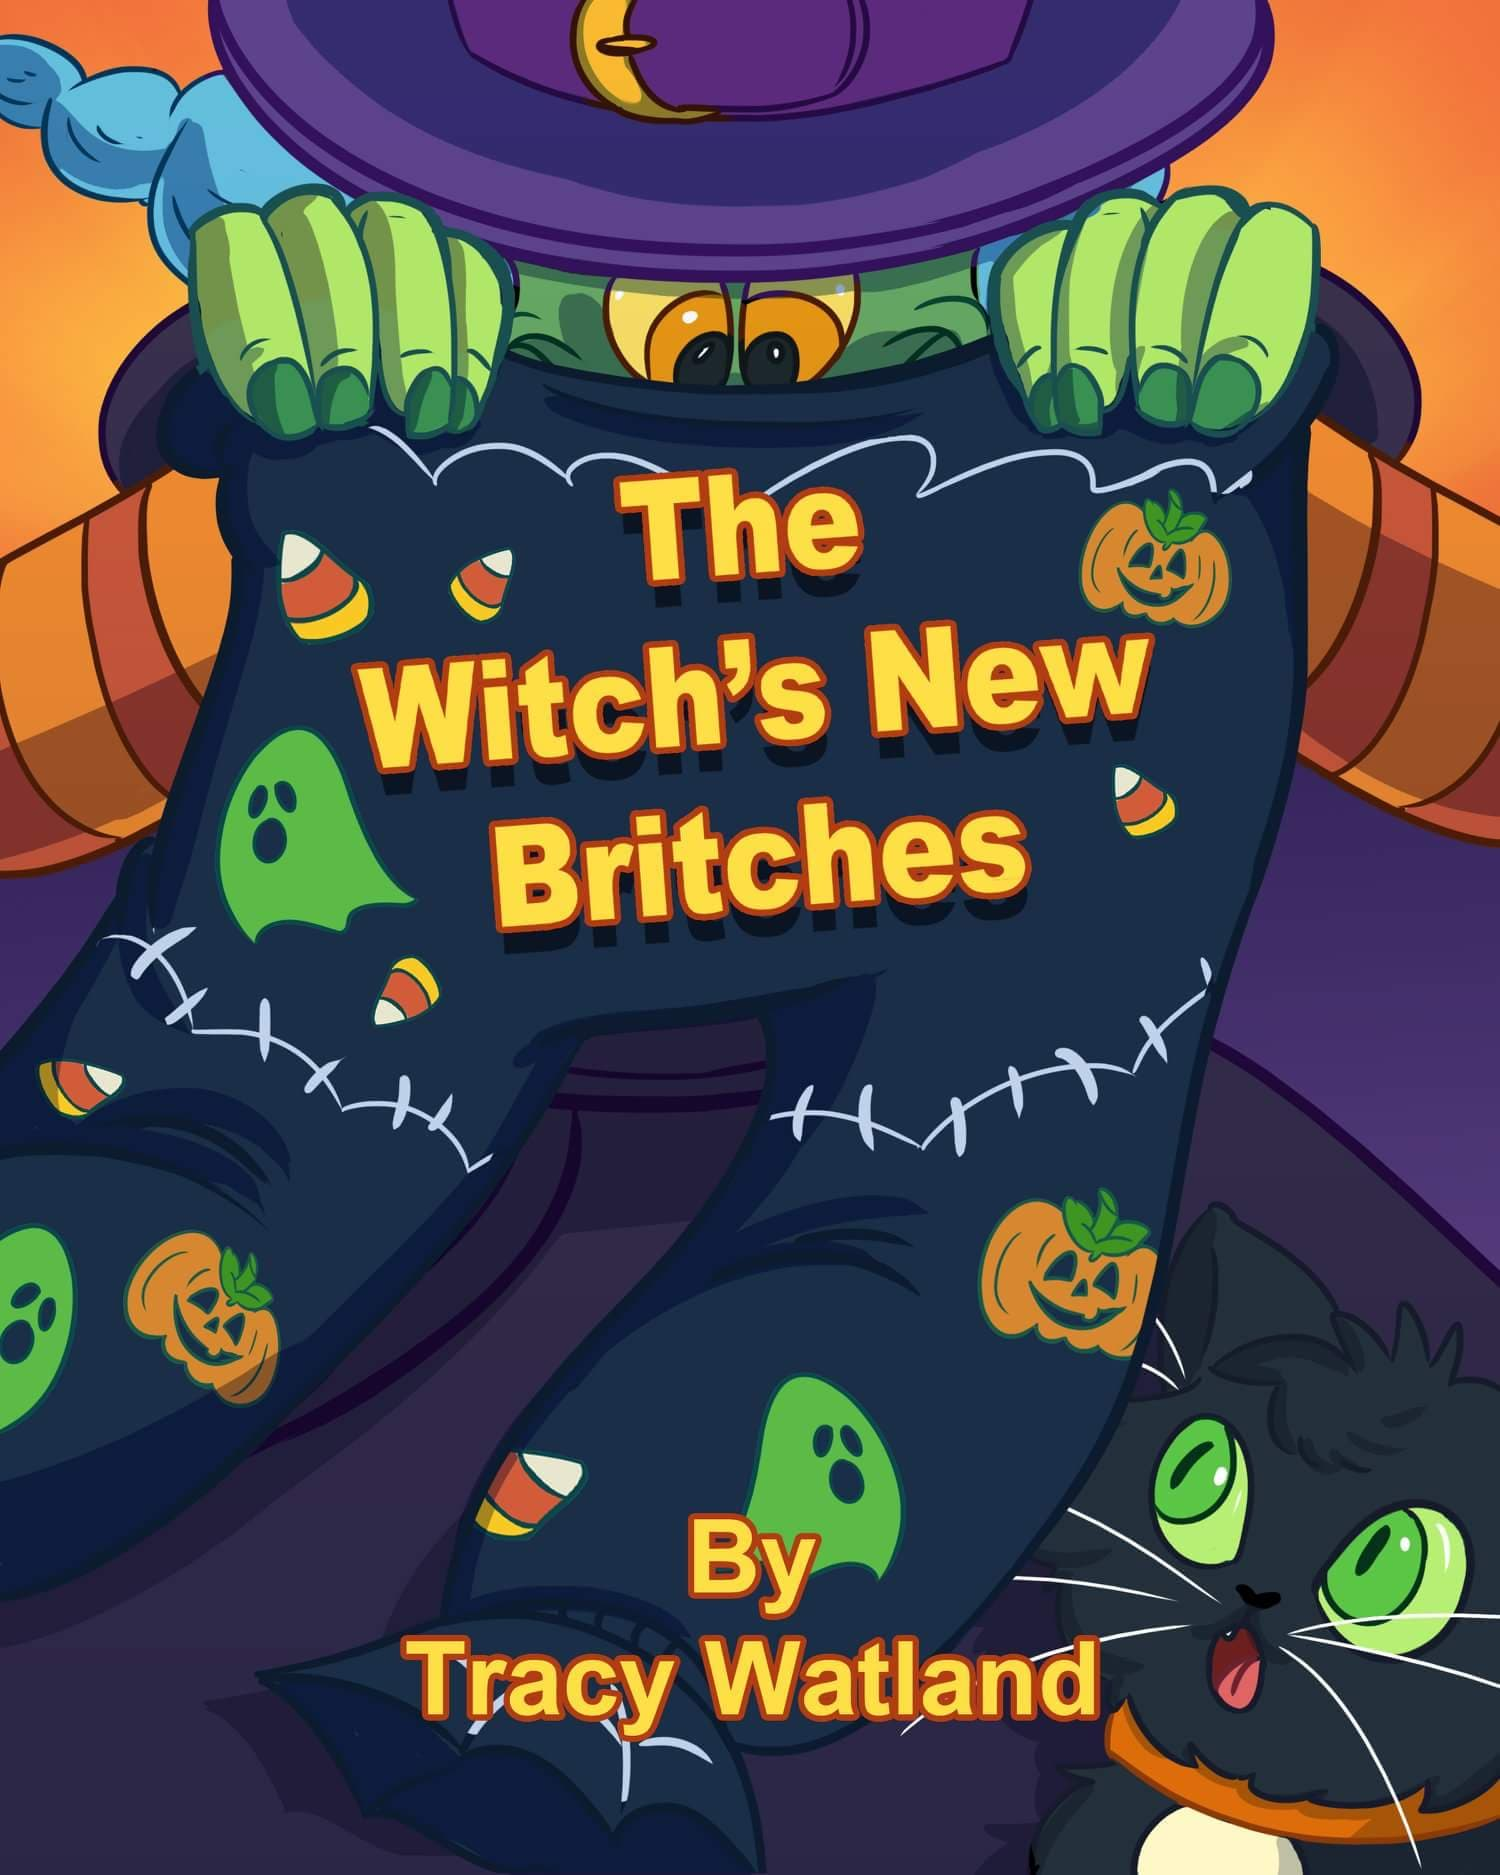 Do Witches Wear Britches?